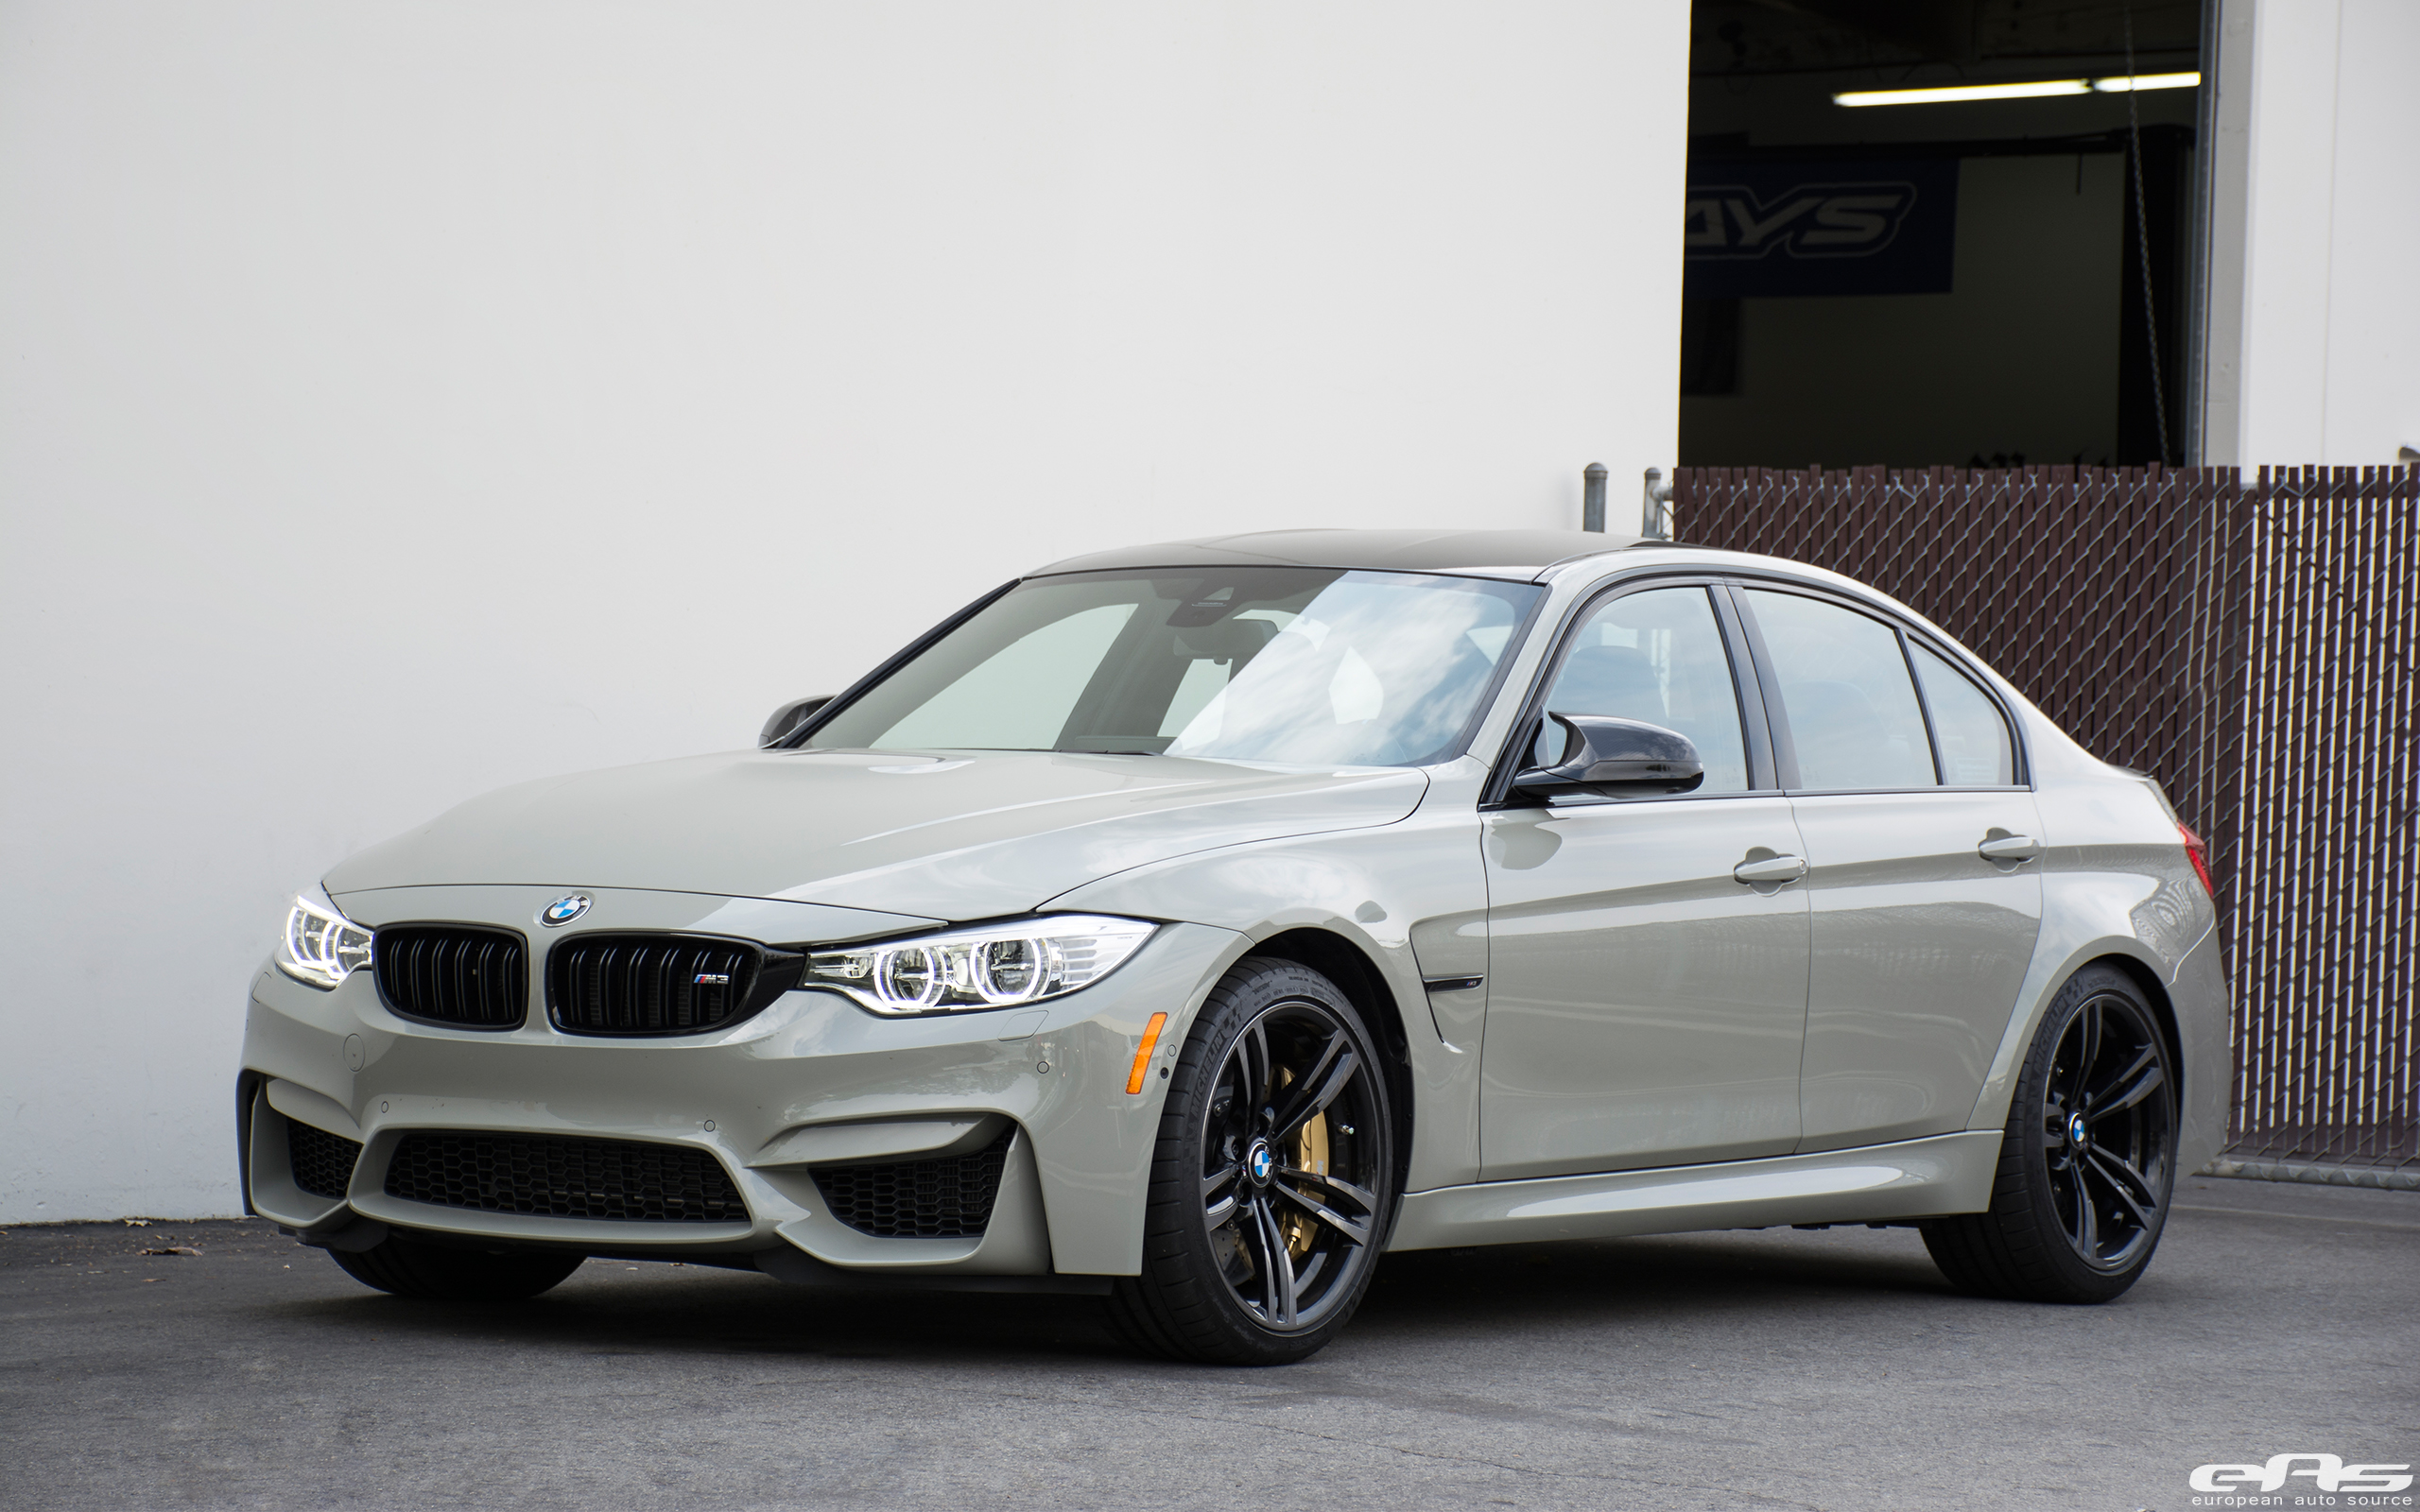 Fashion Grey Bmw F80 M3 Has A Fjord Blue Interior And It S Stunning Autoevolution